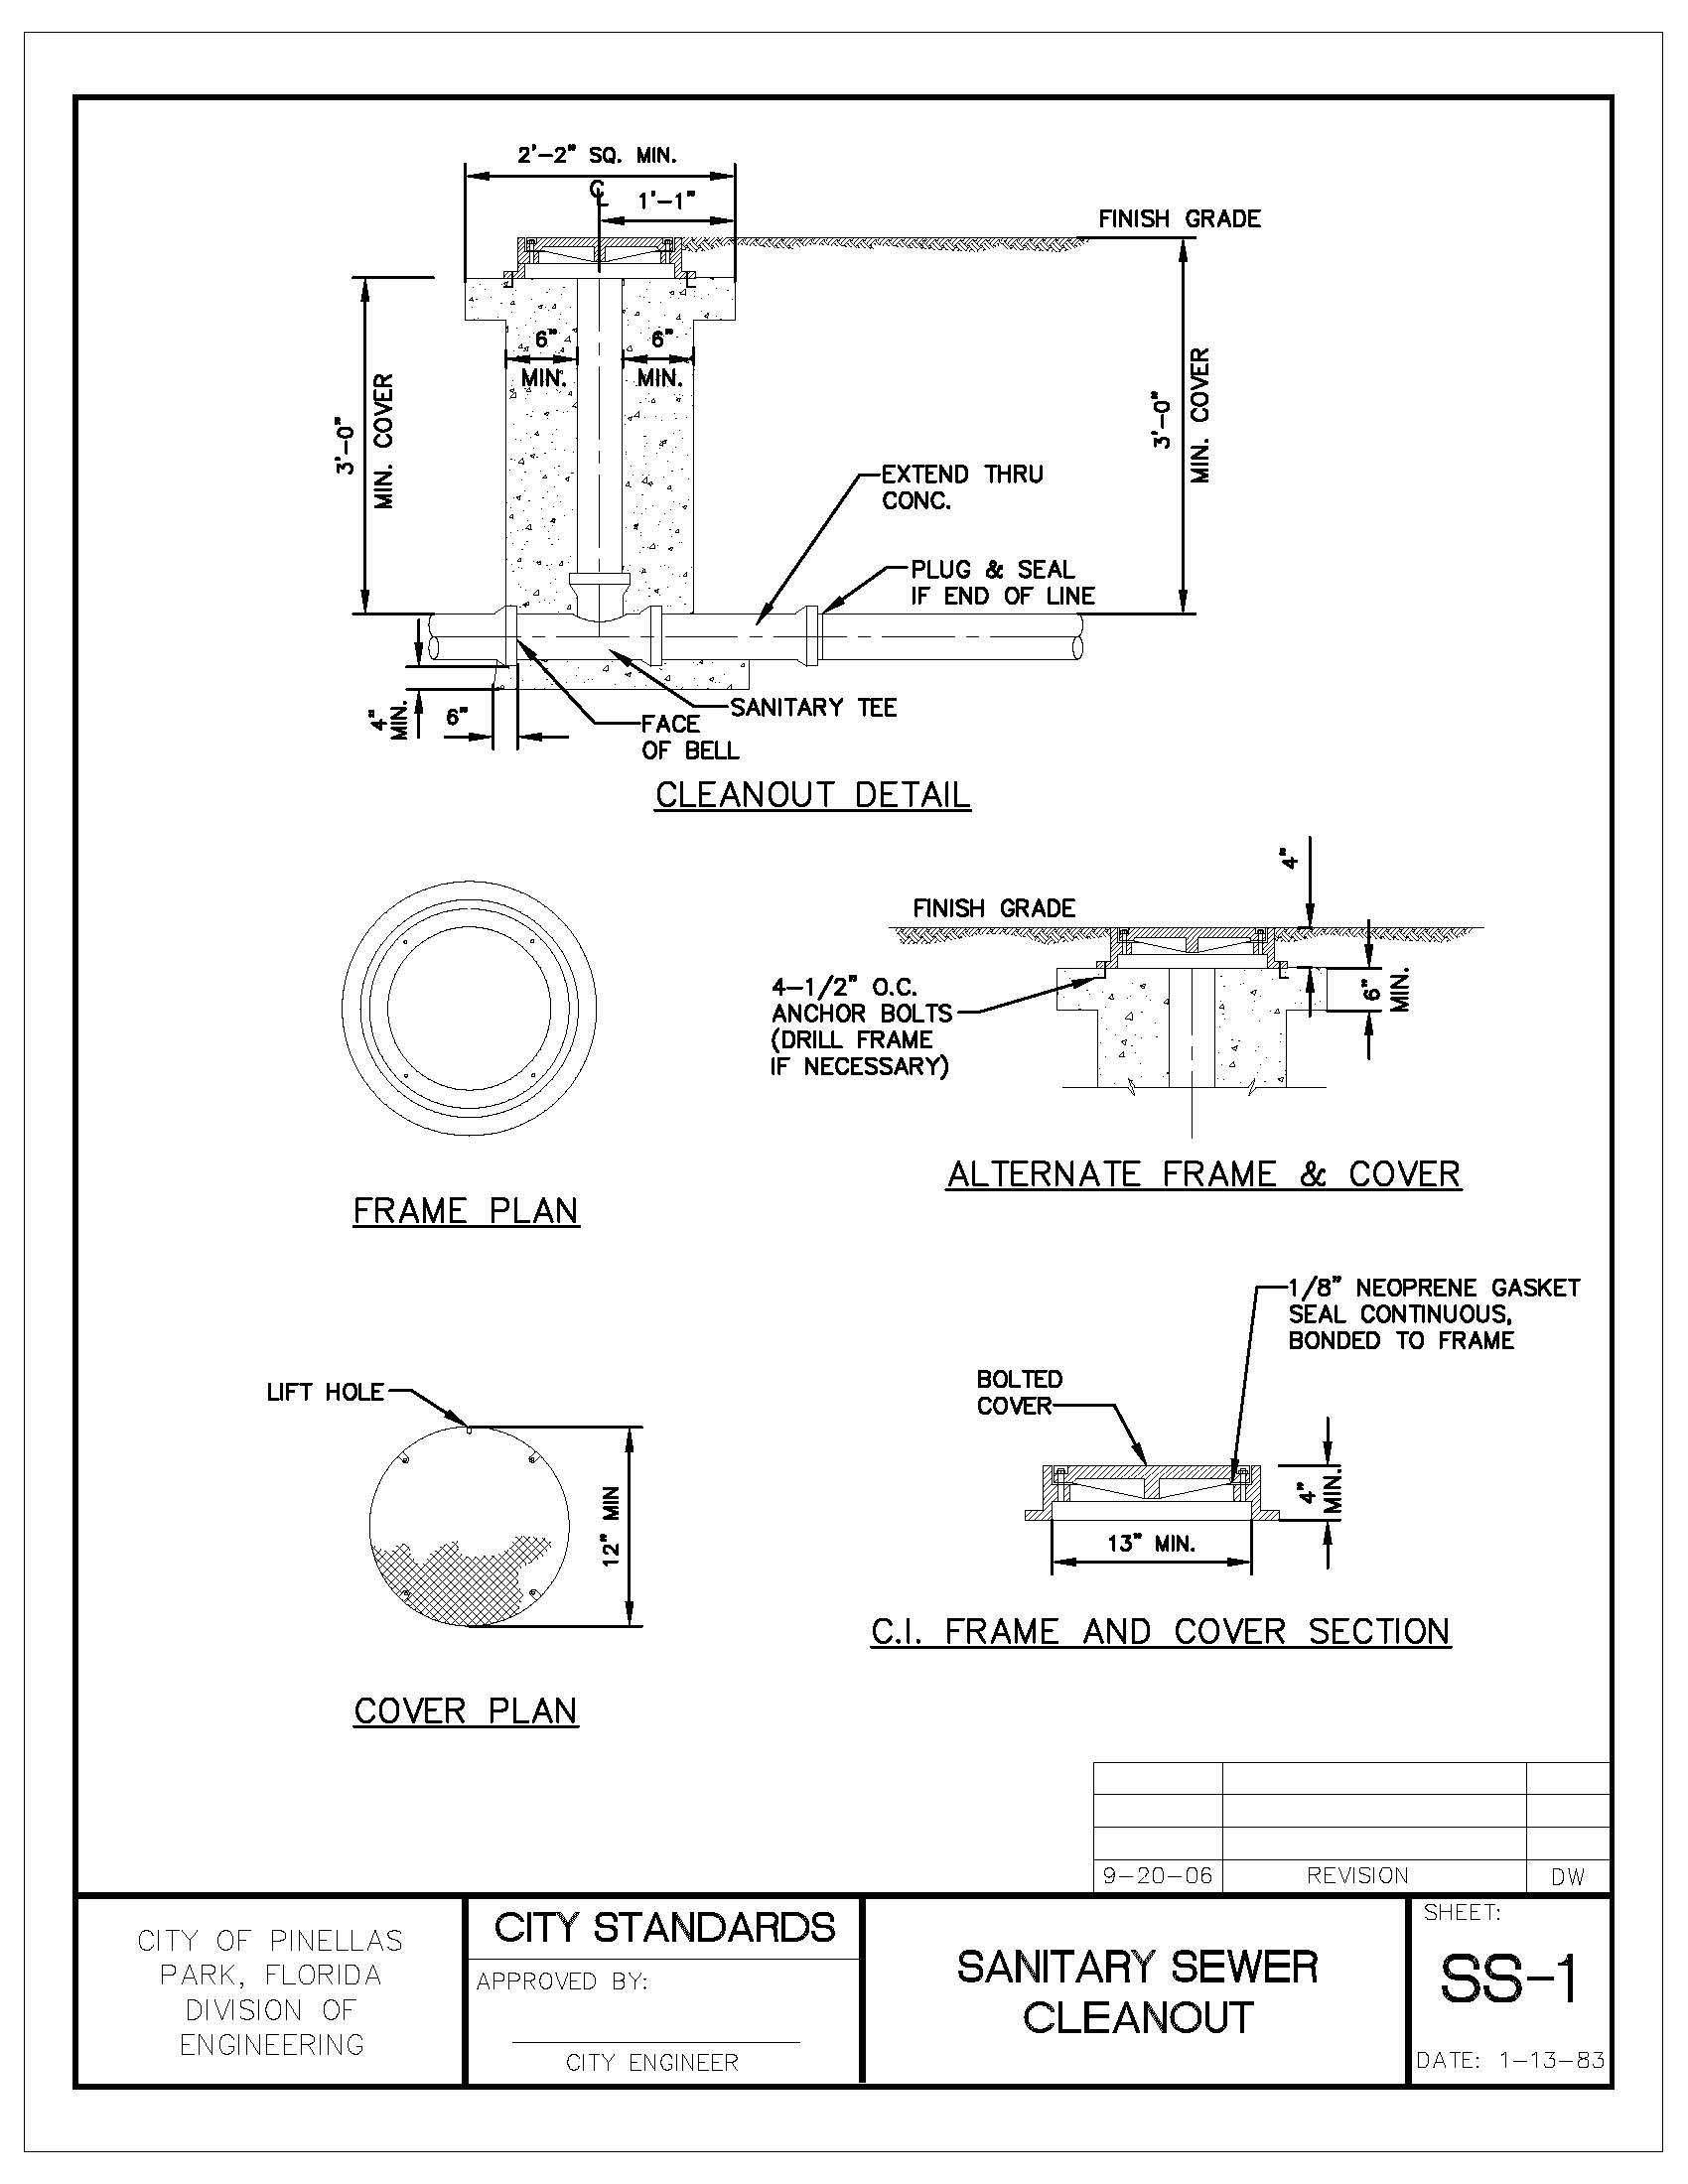 Engineering Manual v5_201908121127291138_Page_064 sanitary sewer cleanout